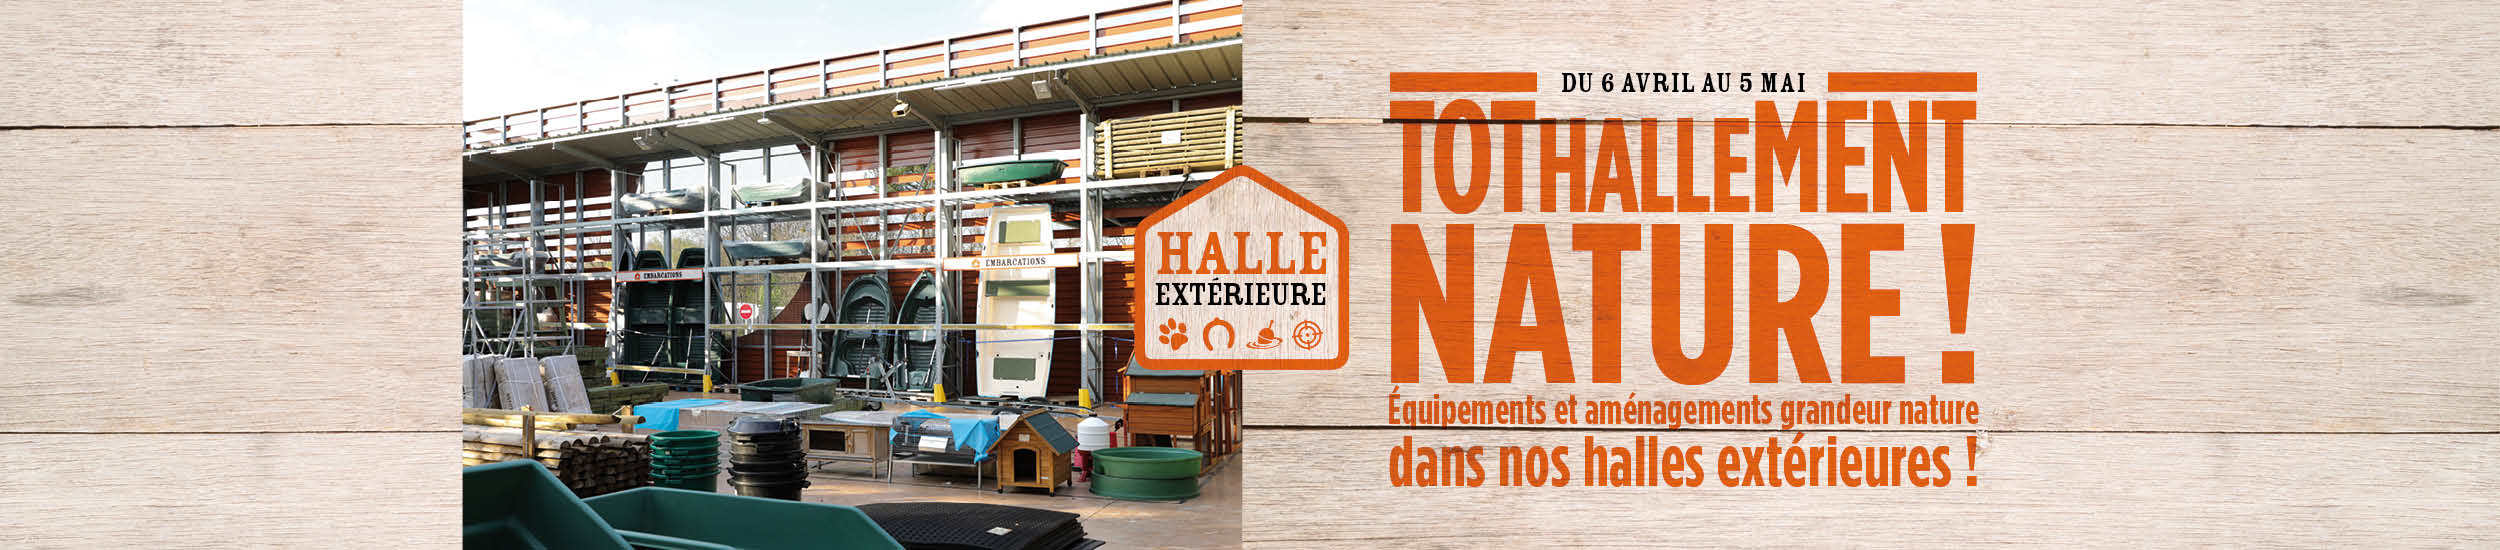 Tot-HALLE-ment nature !